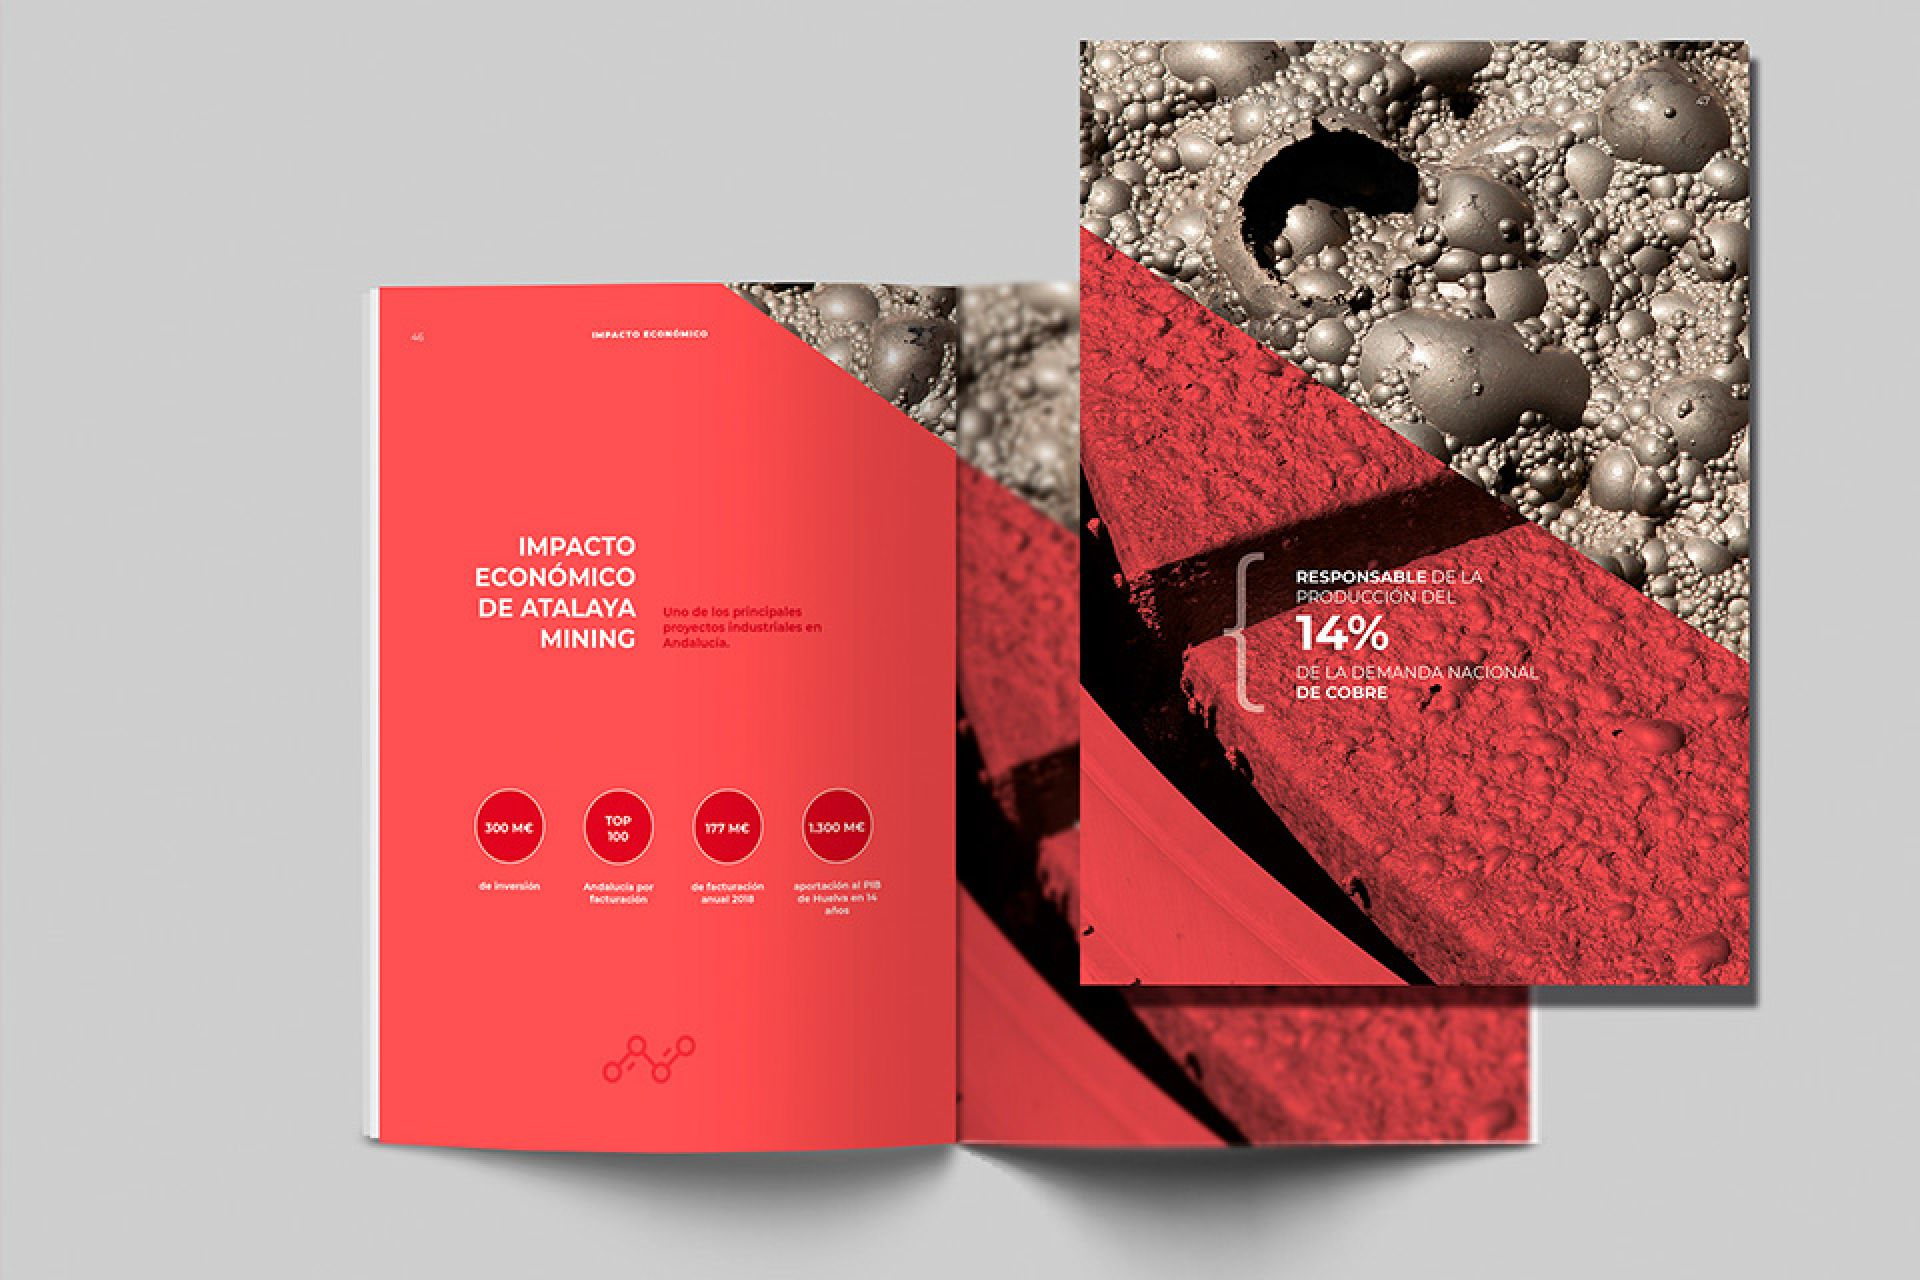 Dossier for Riotinto Project